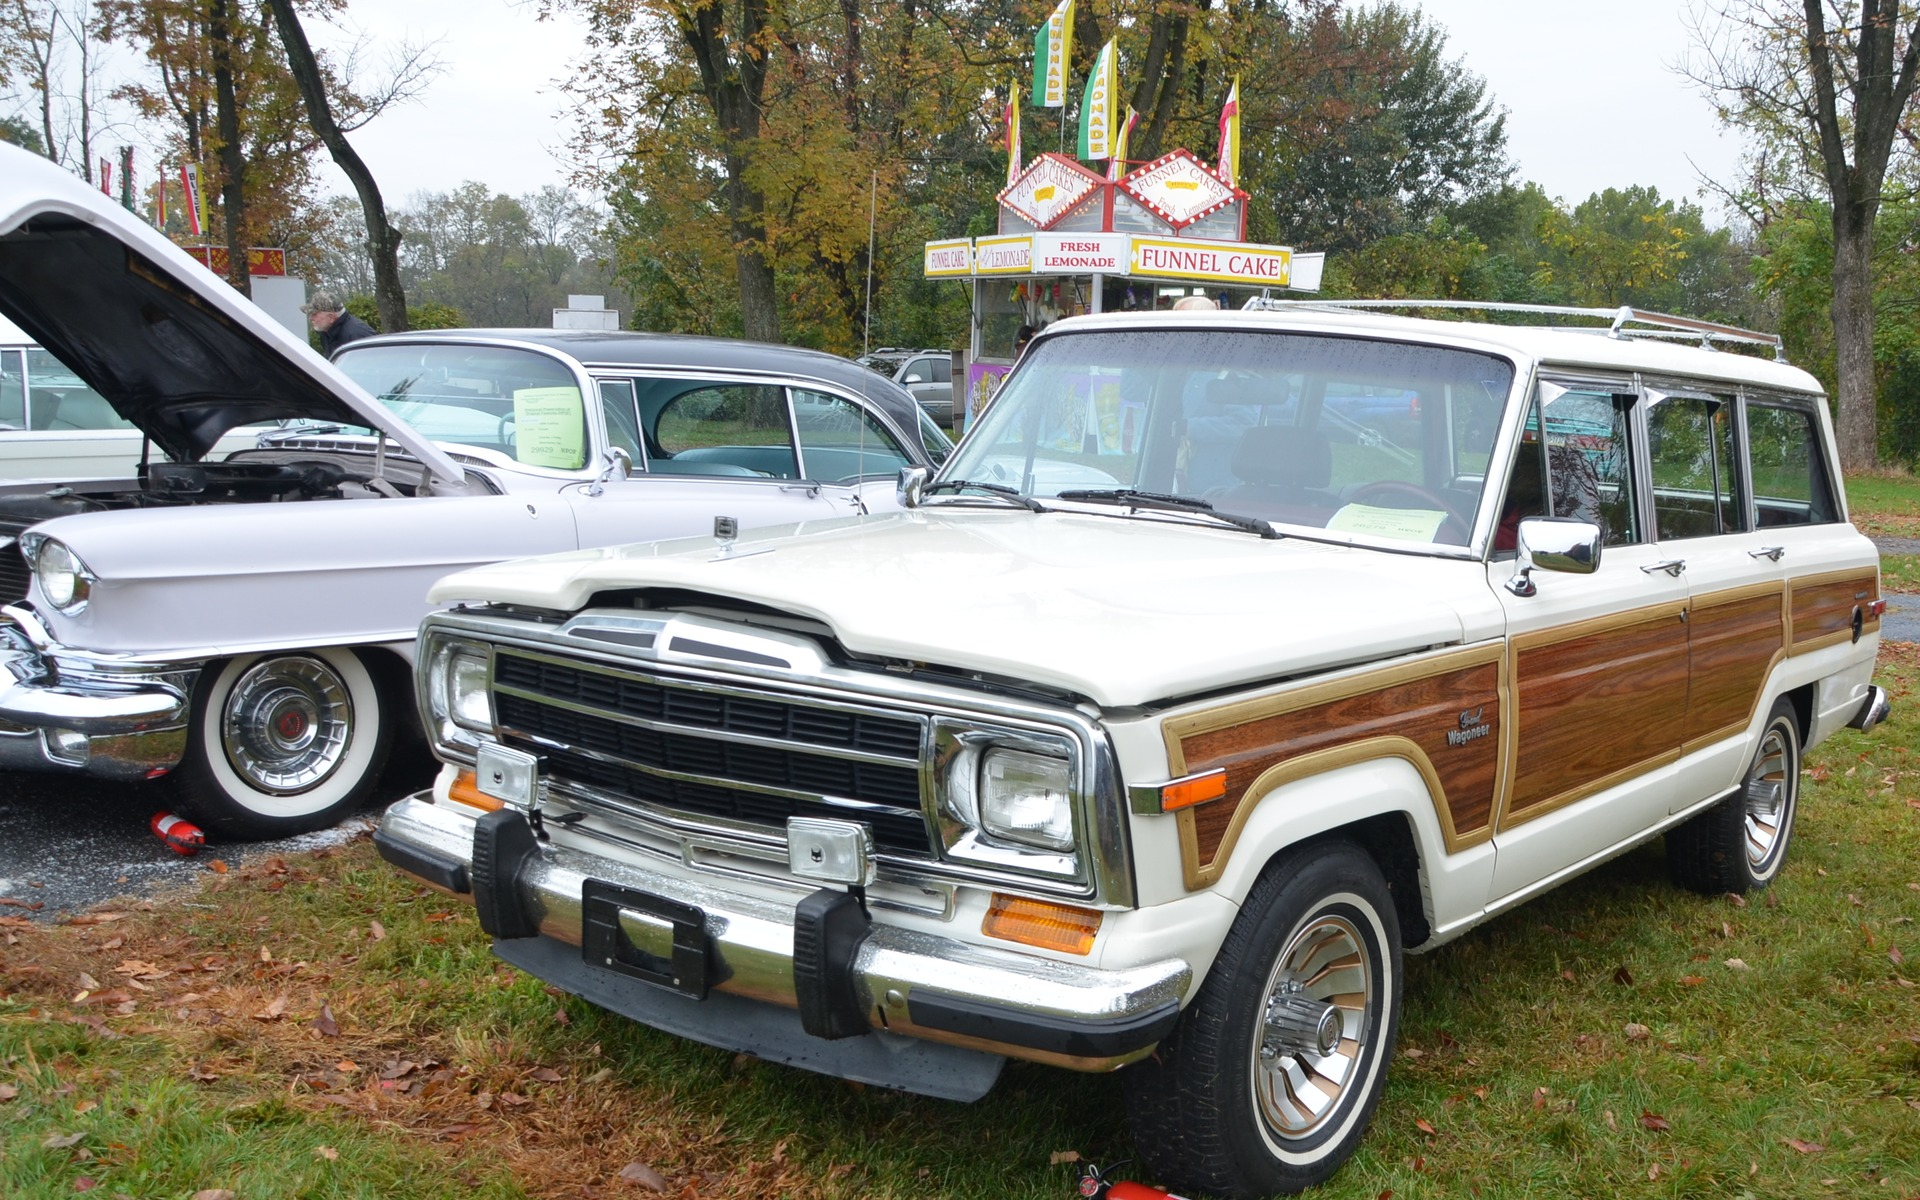 The Jeep Grand Wagoneer Could Cost up to USD$140,000 - The Car Guide